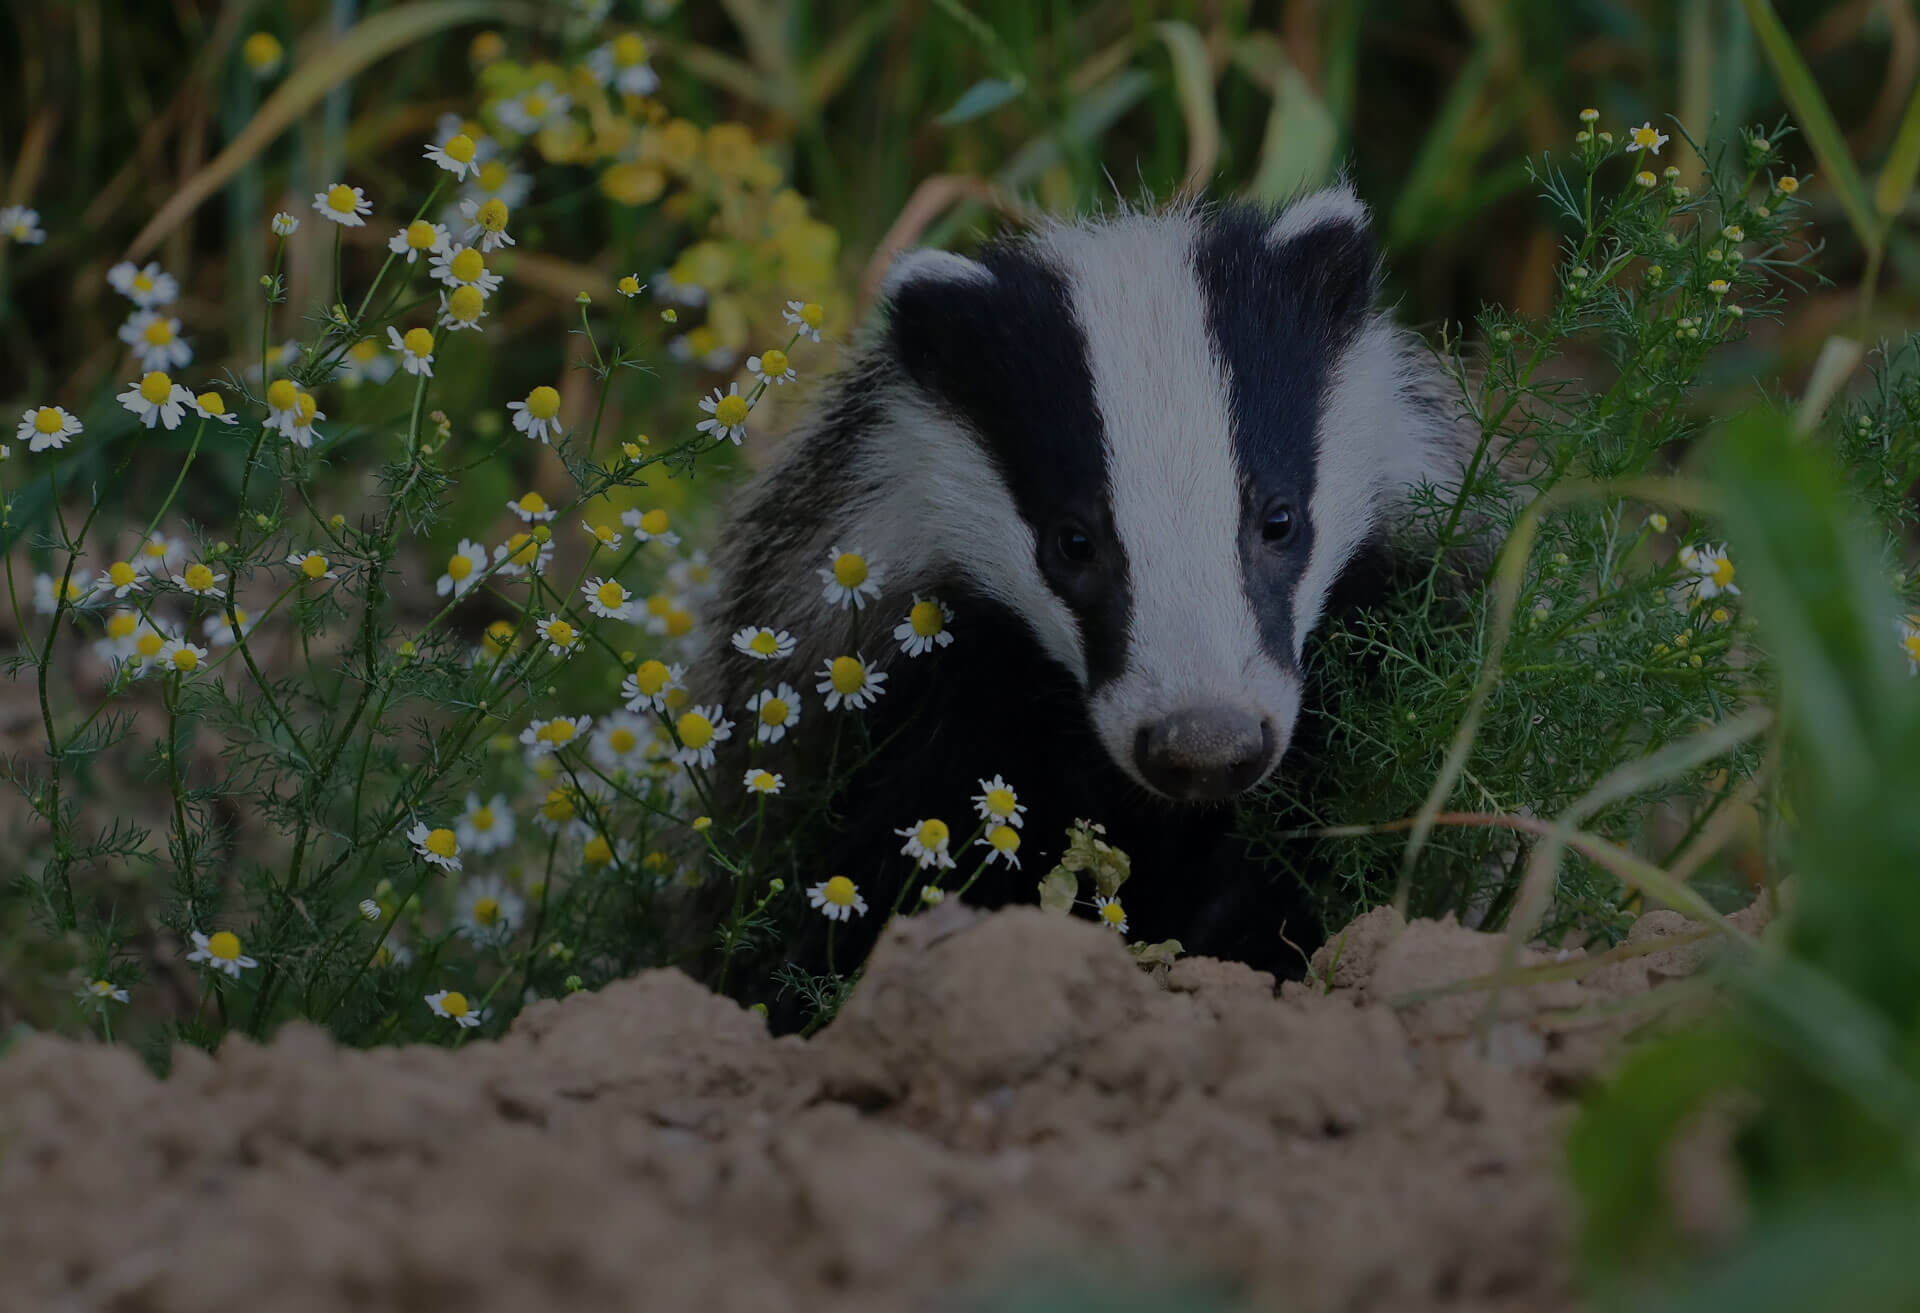 Badger with flowers around him